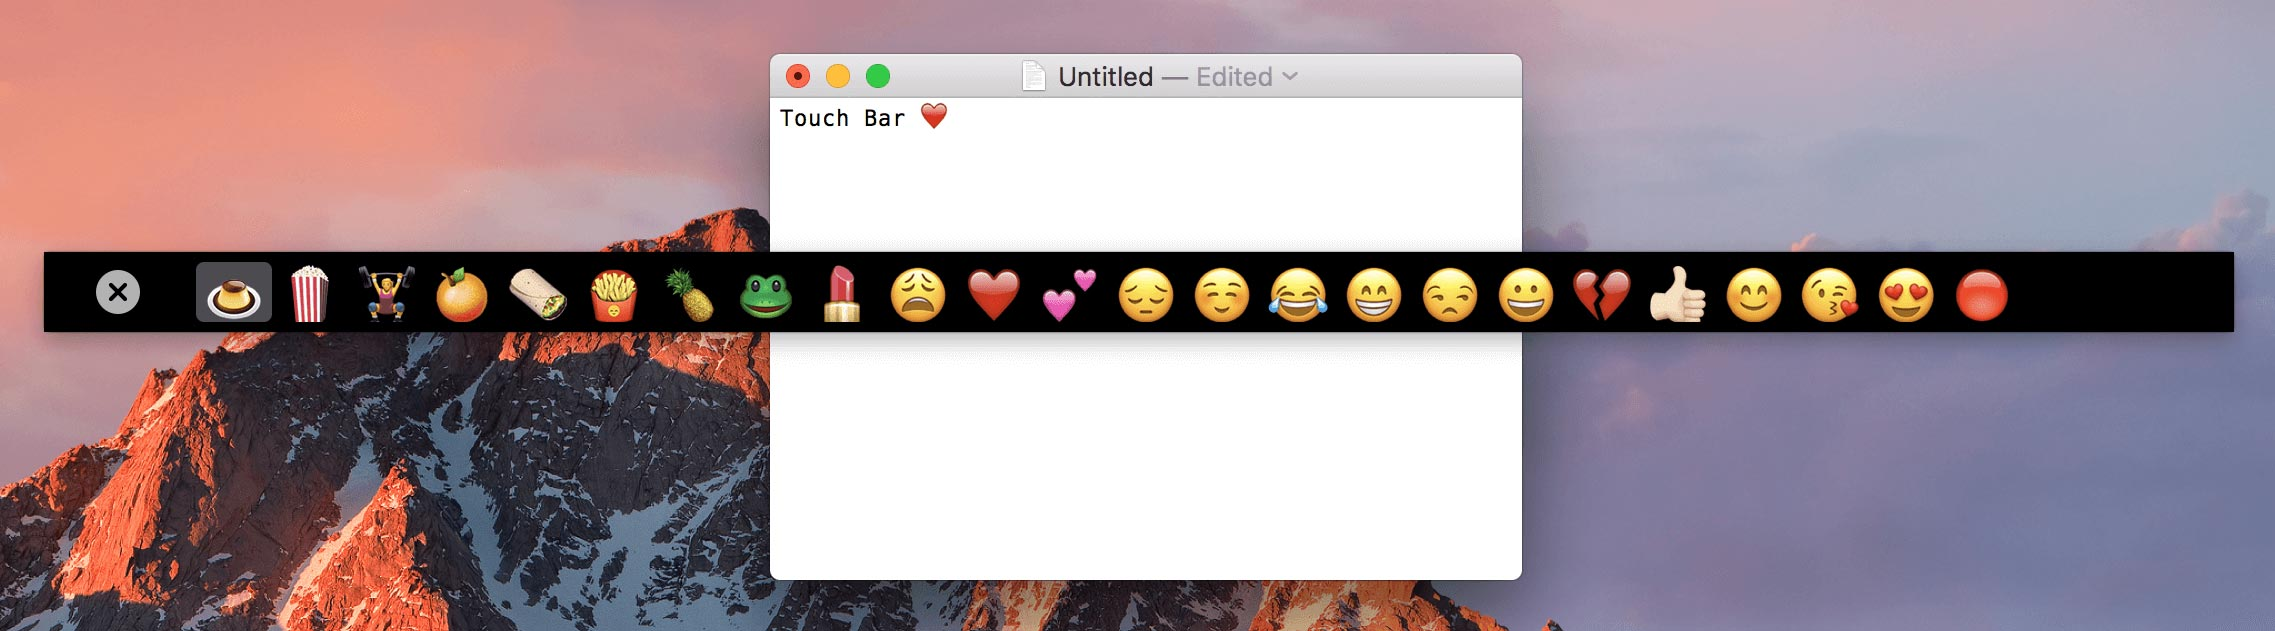 TouchBarDemoApp on GitHub: Run Touch Bar on iPad or macOS Screen